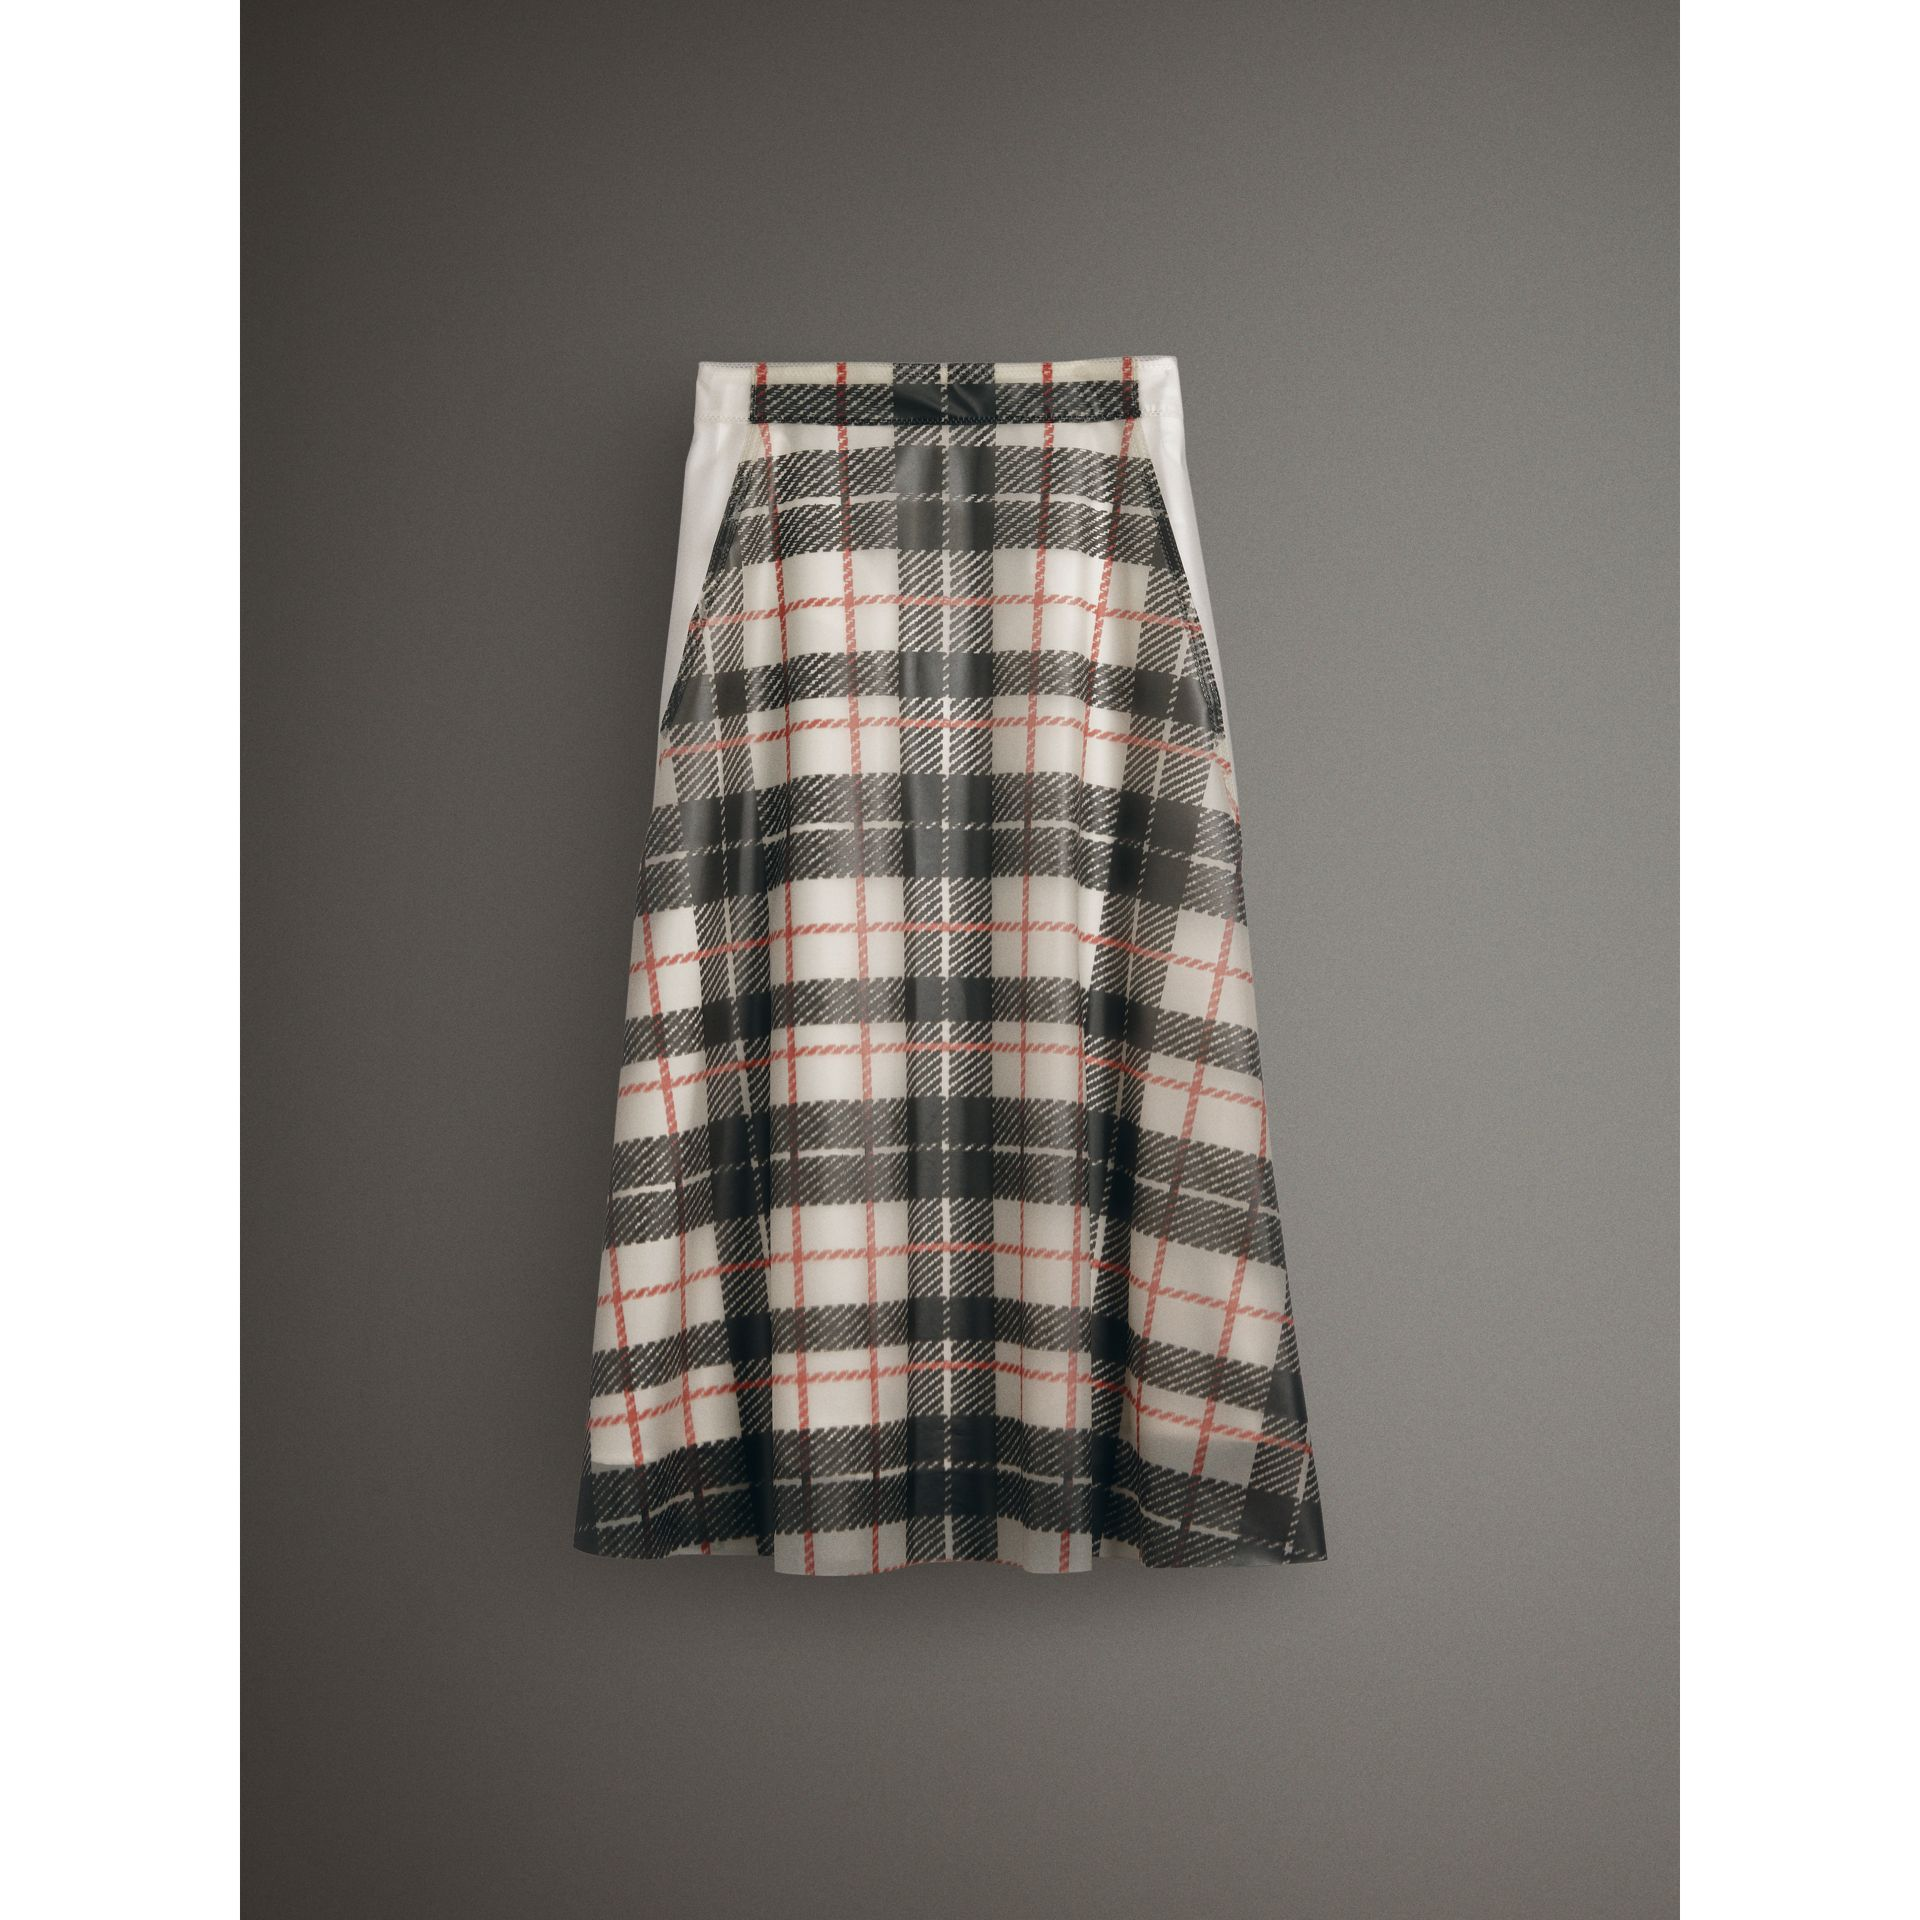 Silk-lined Tartan Plastic A-line Skirt in Black/beige - Women | Burberry - gallery image 4